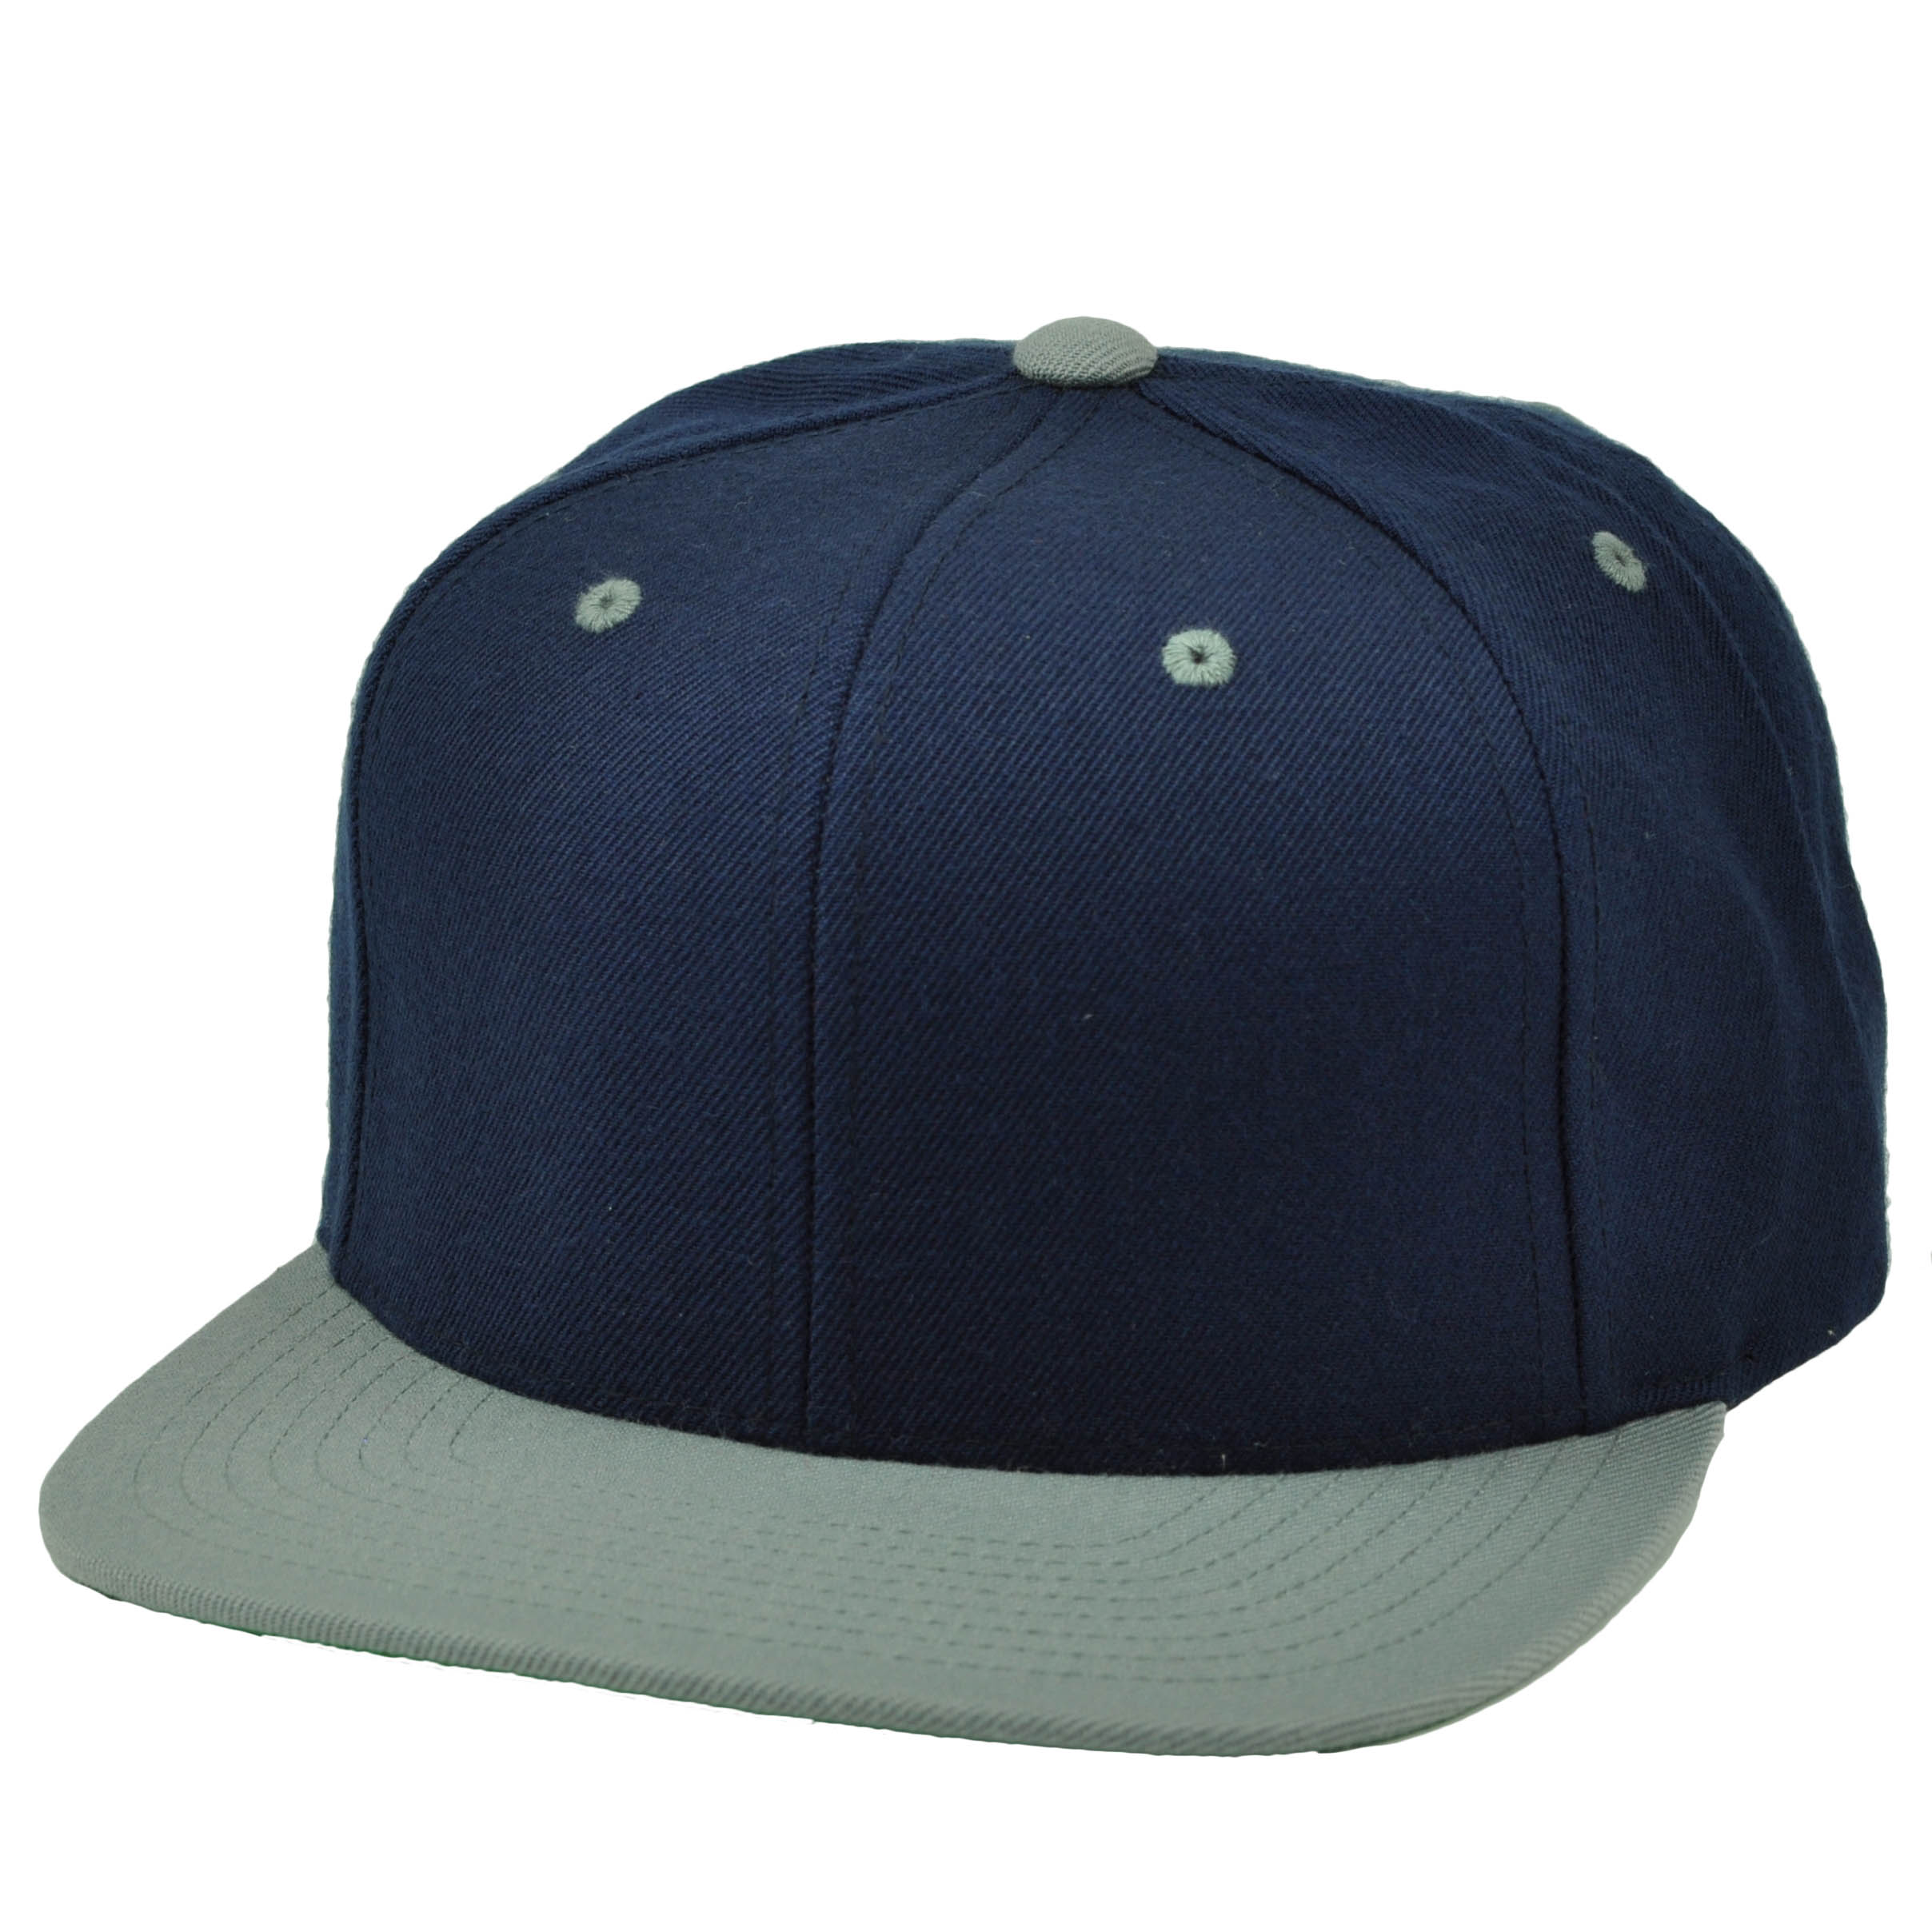 ca6e14b6082 Starter Navy Blue Gray Blank Plain Snapback Hat Cap 2 Tone Adjustable Flat  Bill